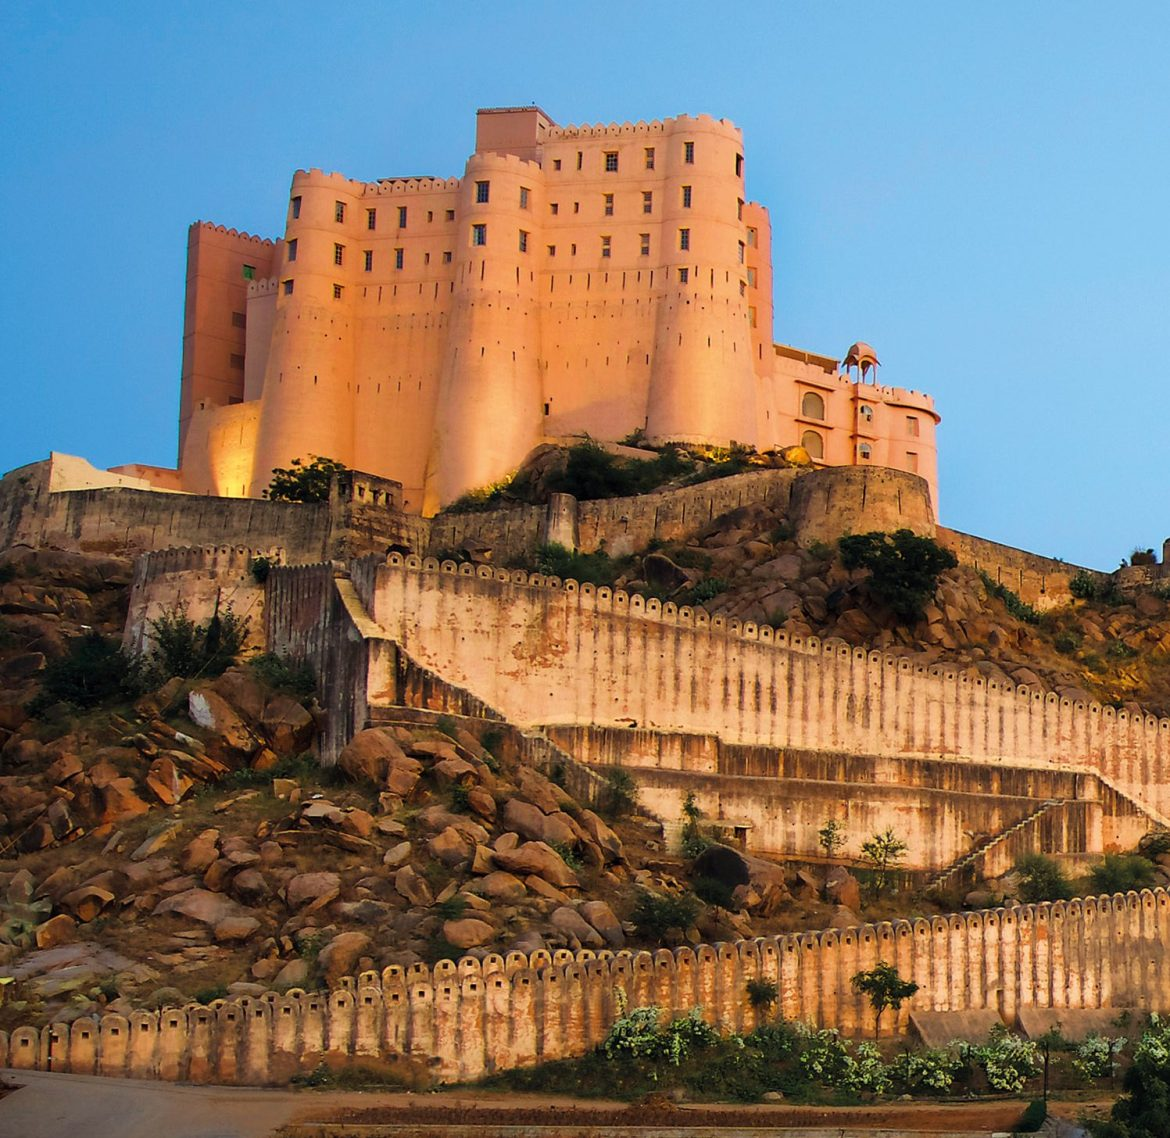 Set on a granite hill, the watchful fortress looks out over the Aravalli Range